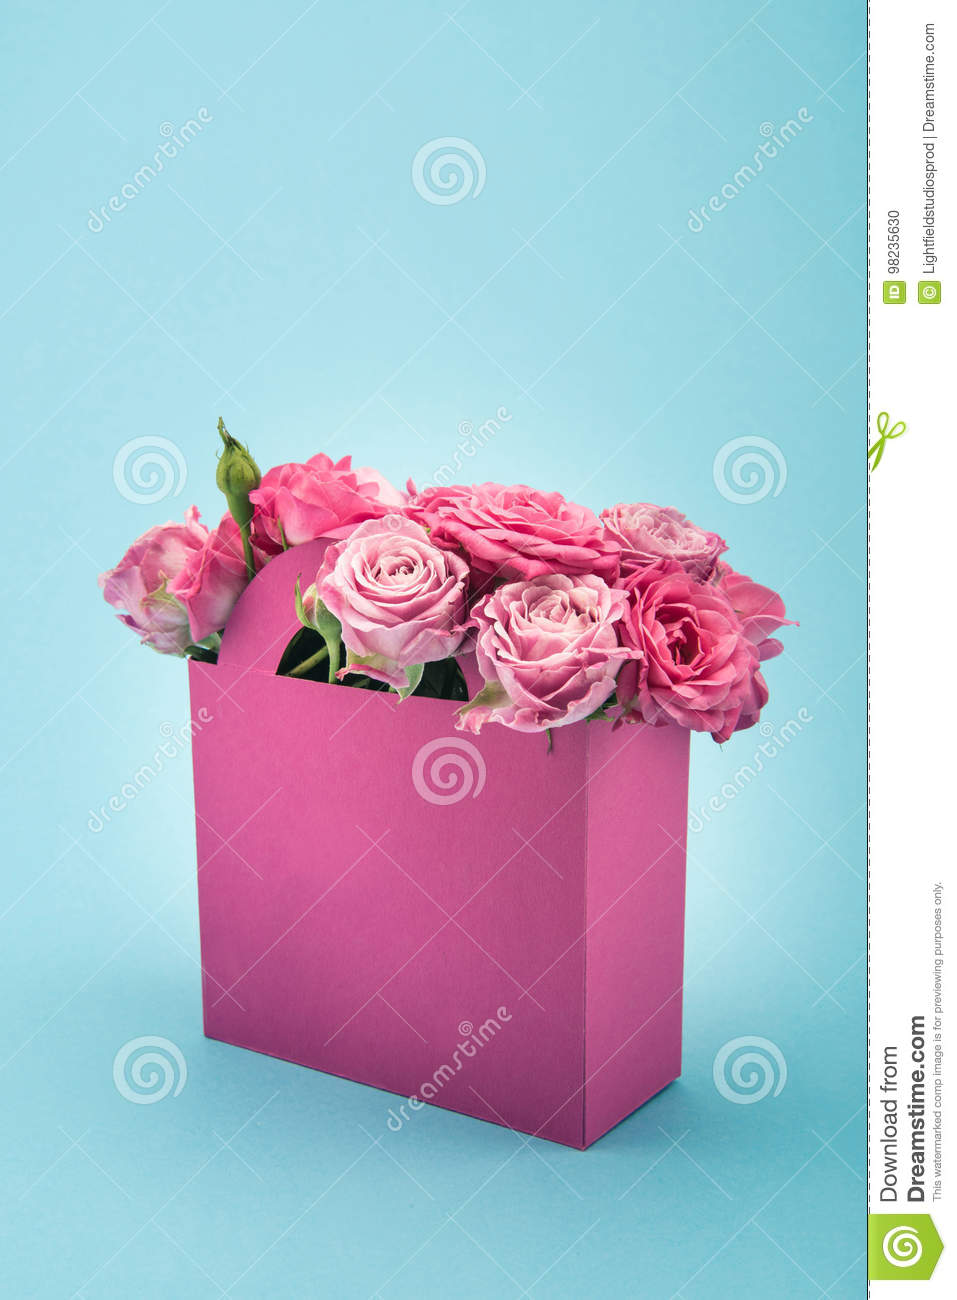 Beautiful blooming pink roses in decorative paper bag arranged isolated on blue